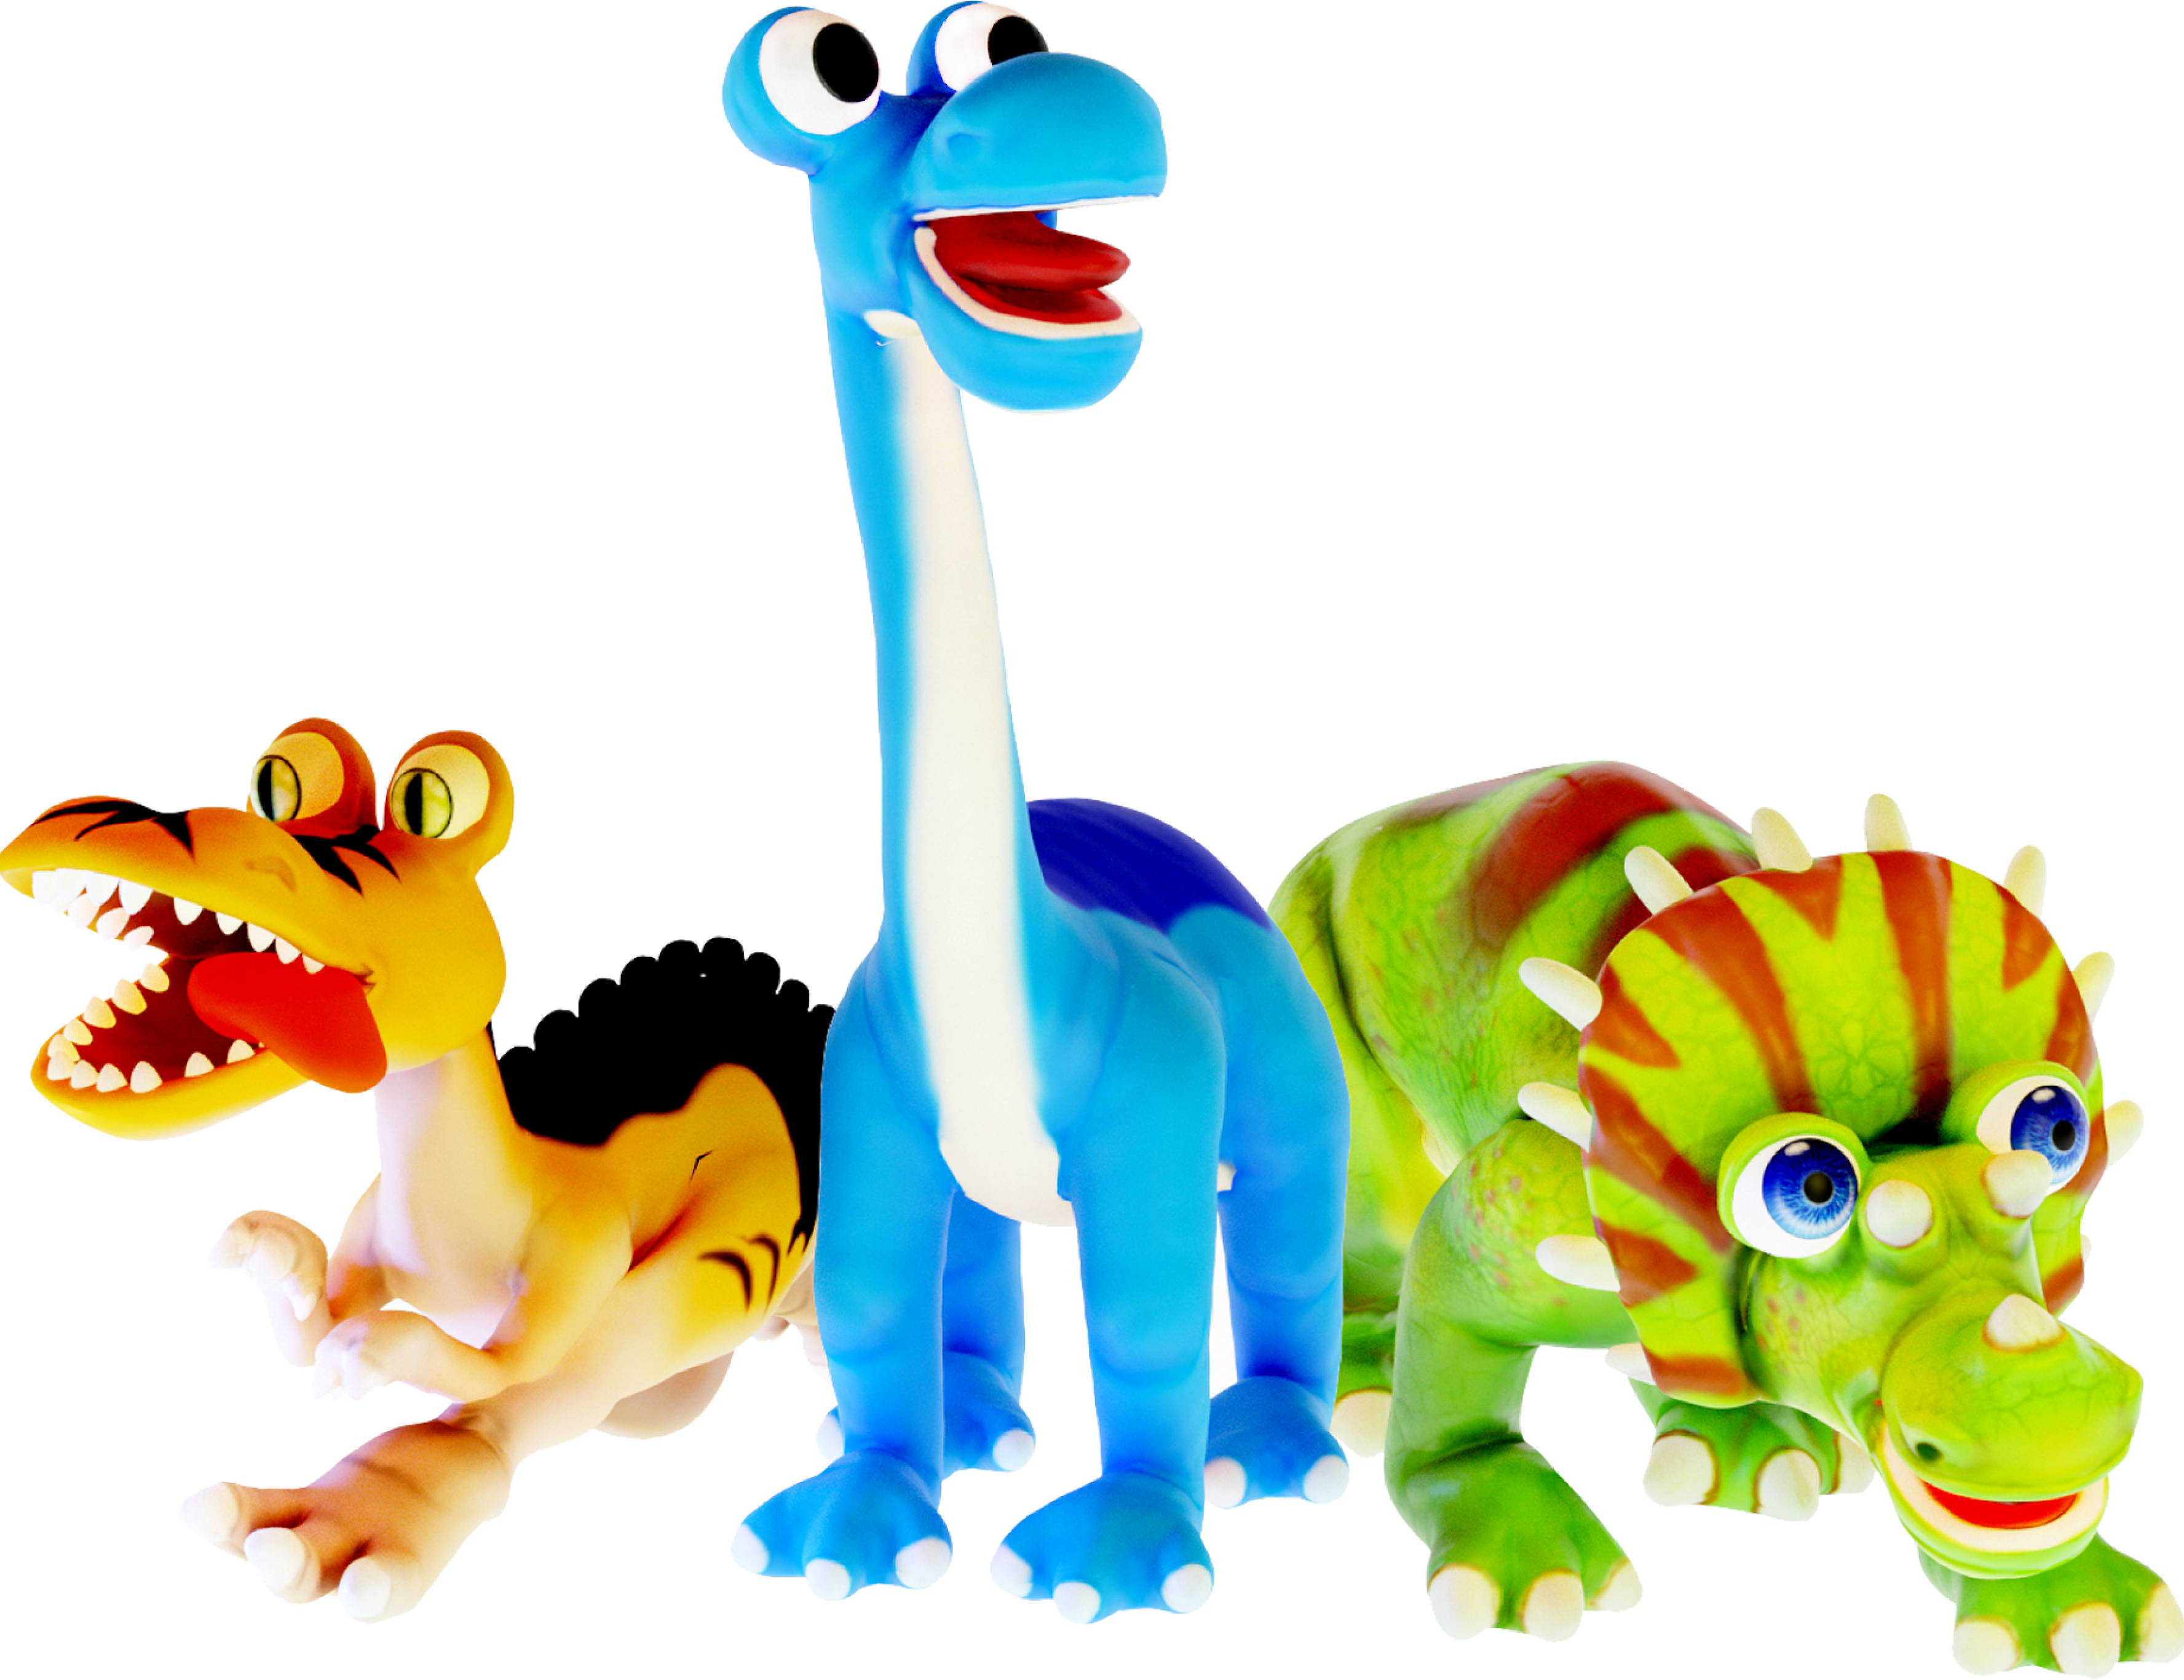 augmented reality toys Dinosaurs